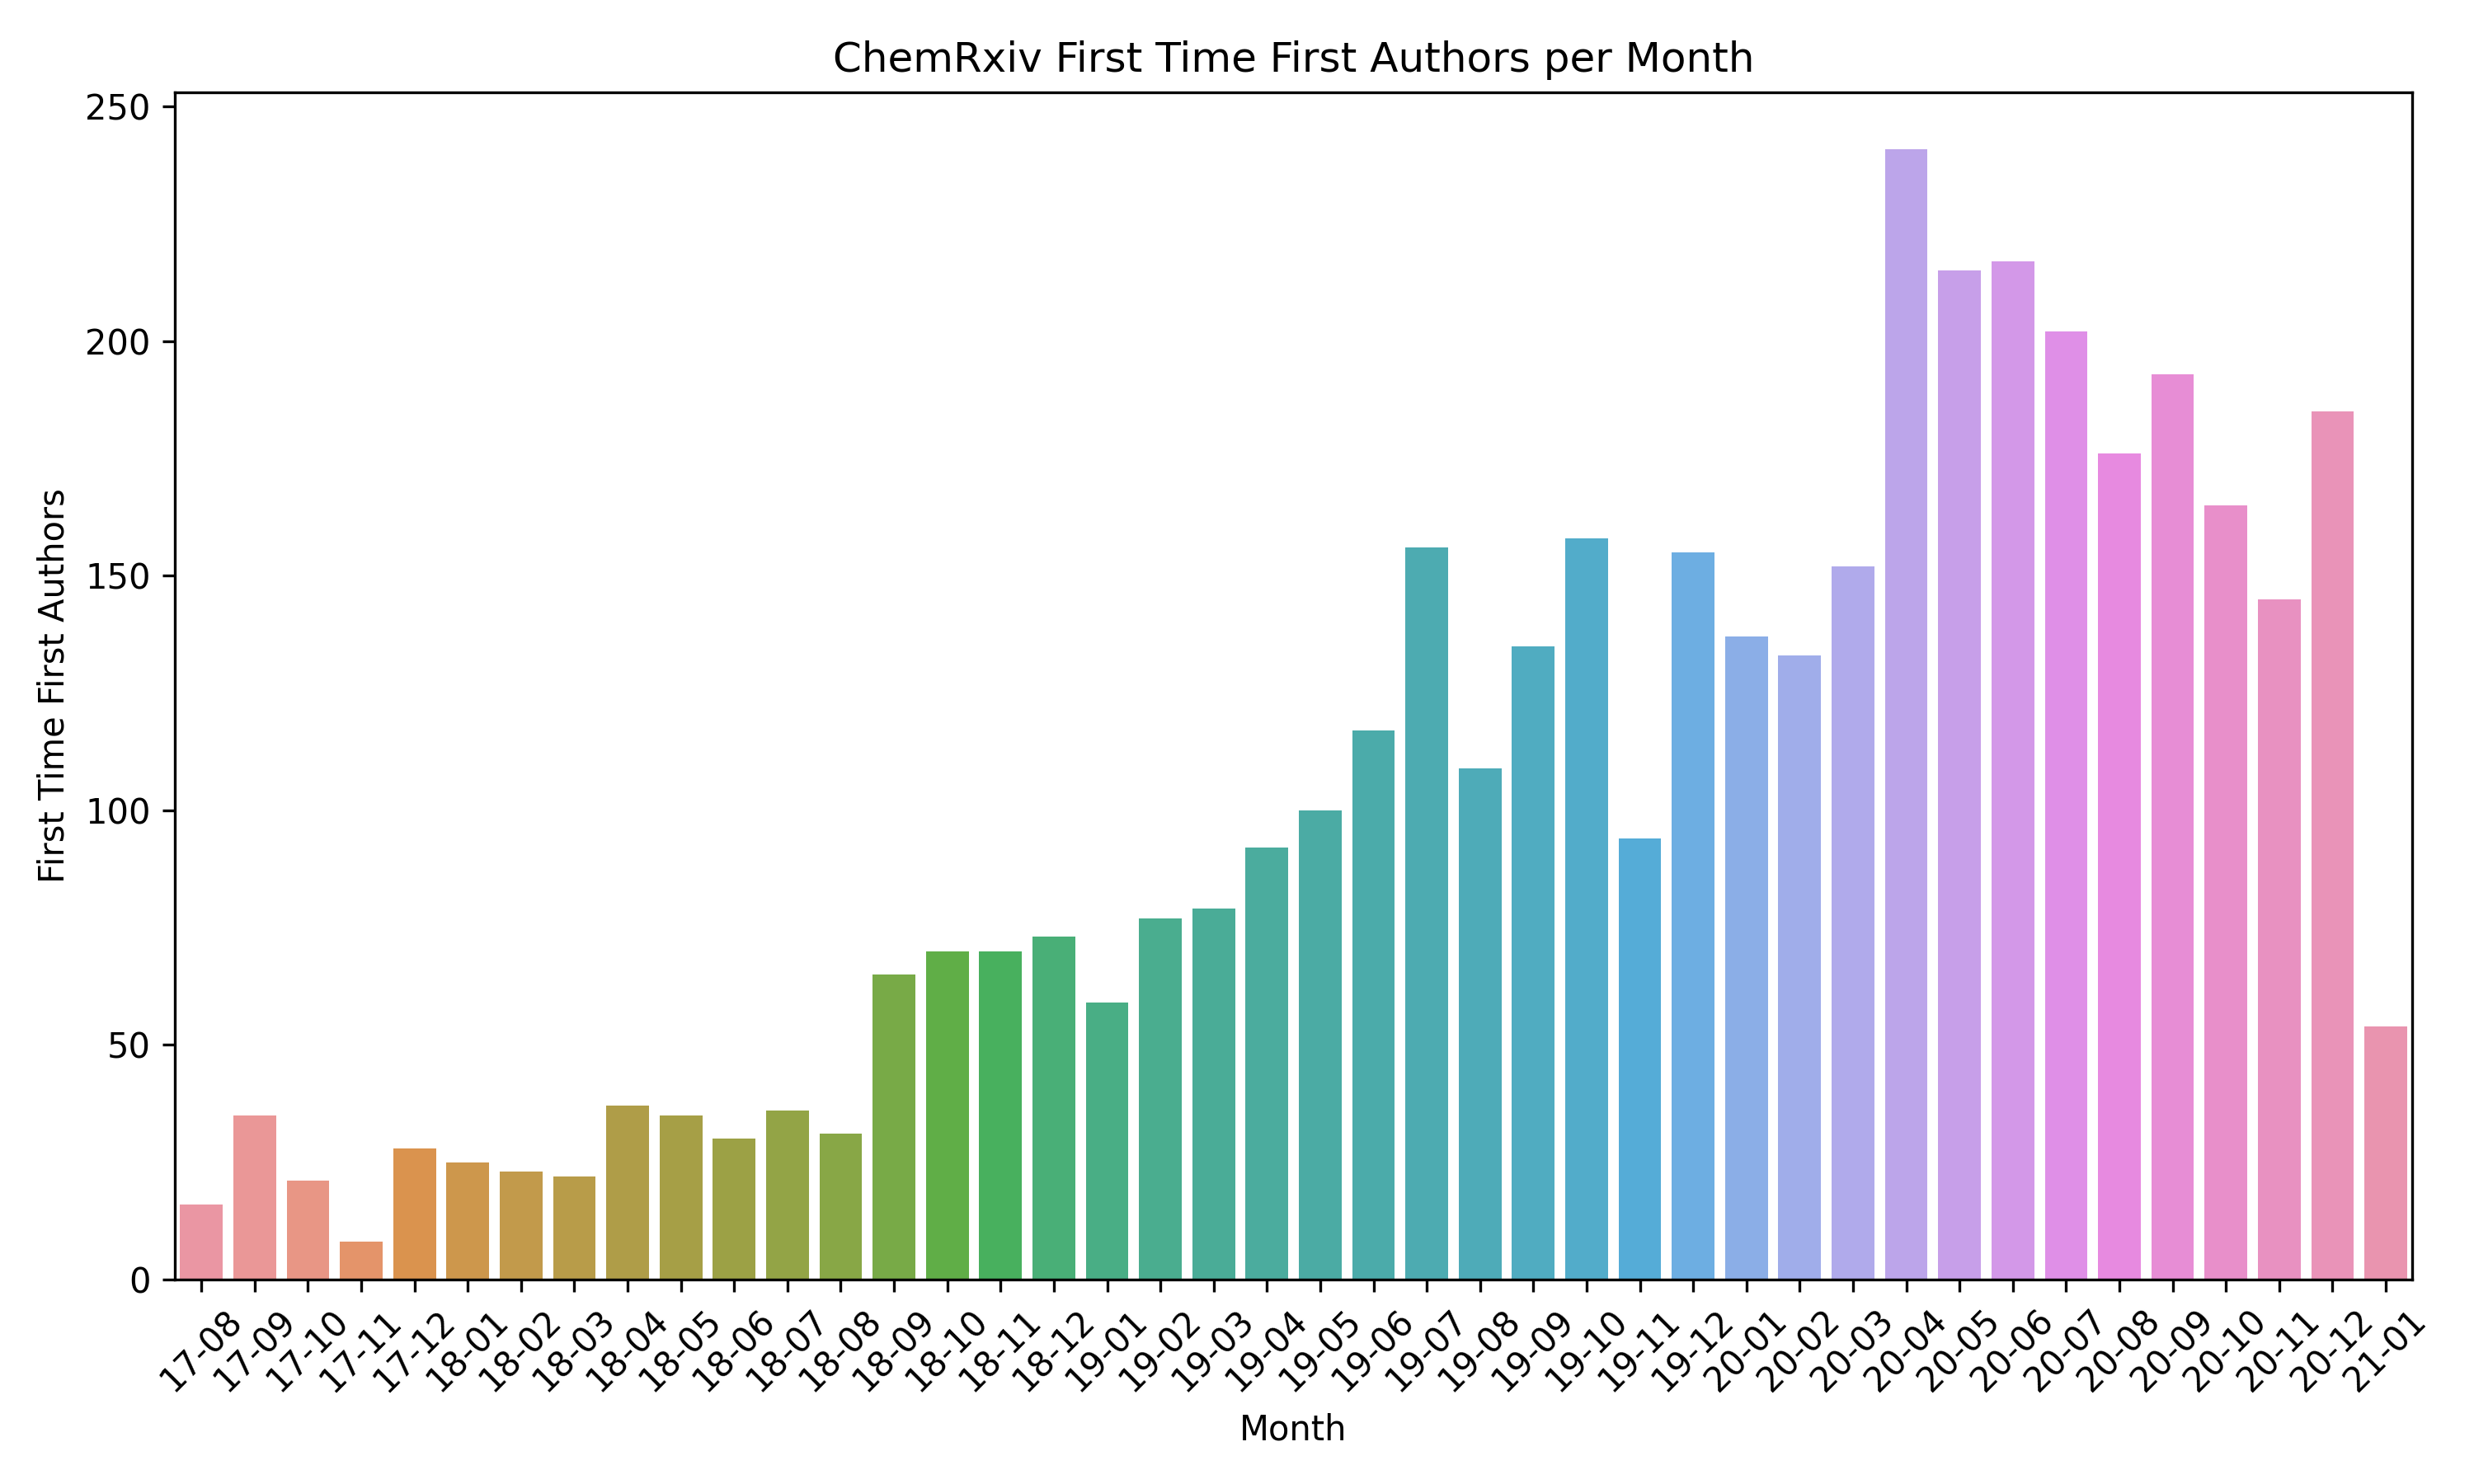 First Time First Authors per Month